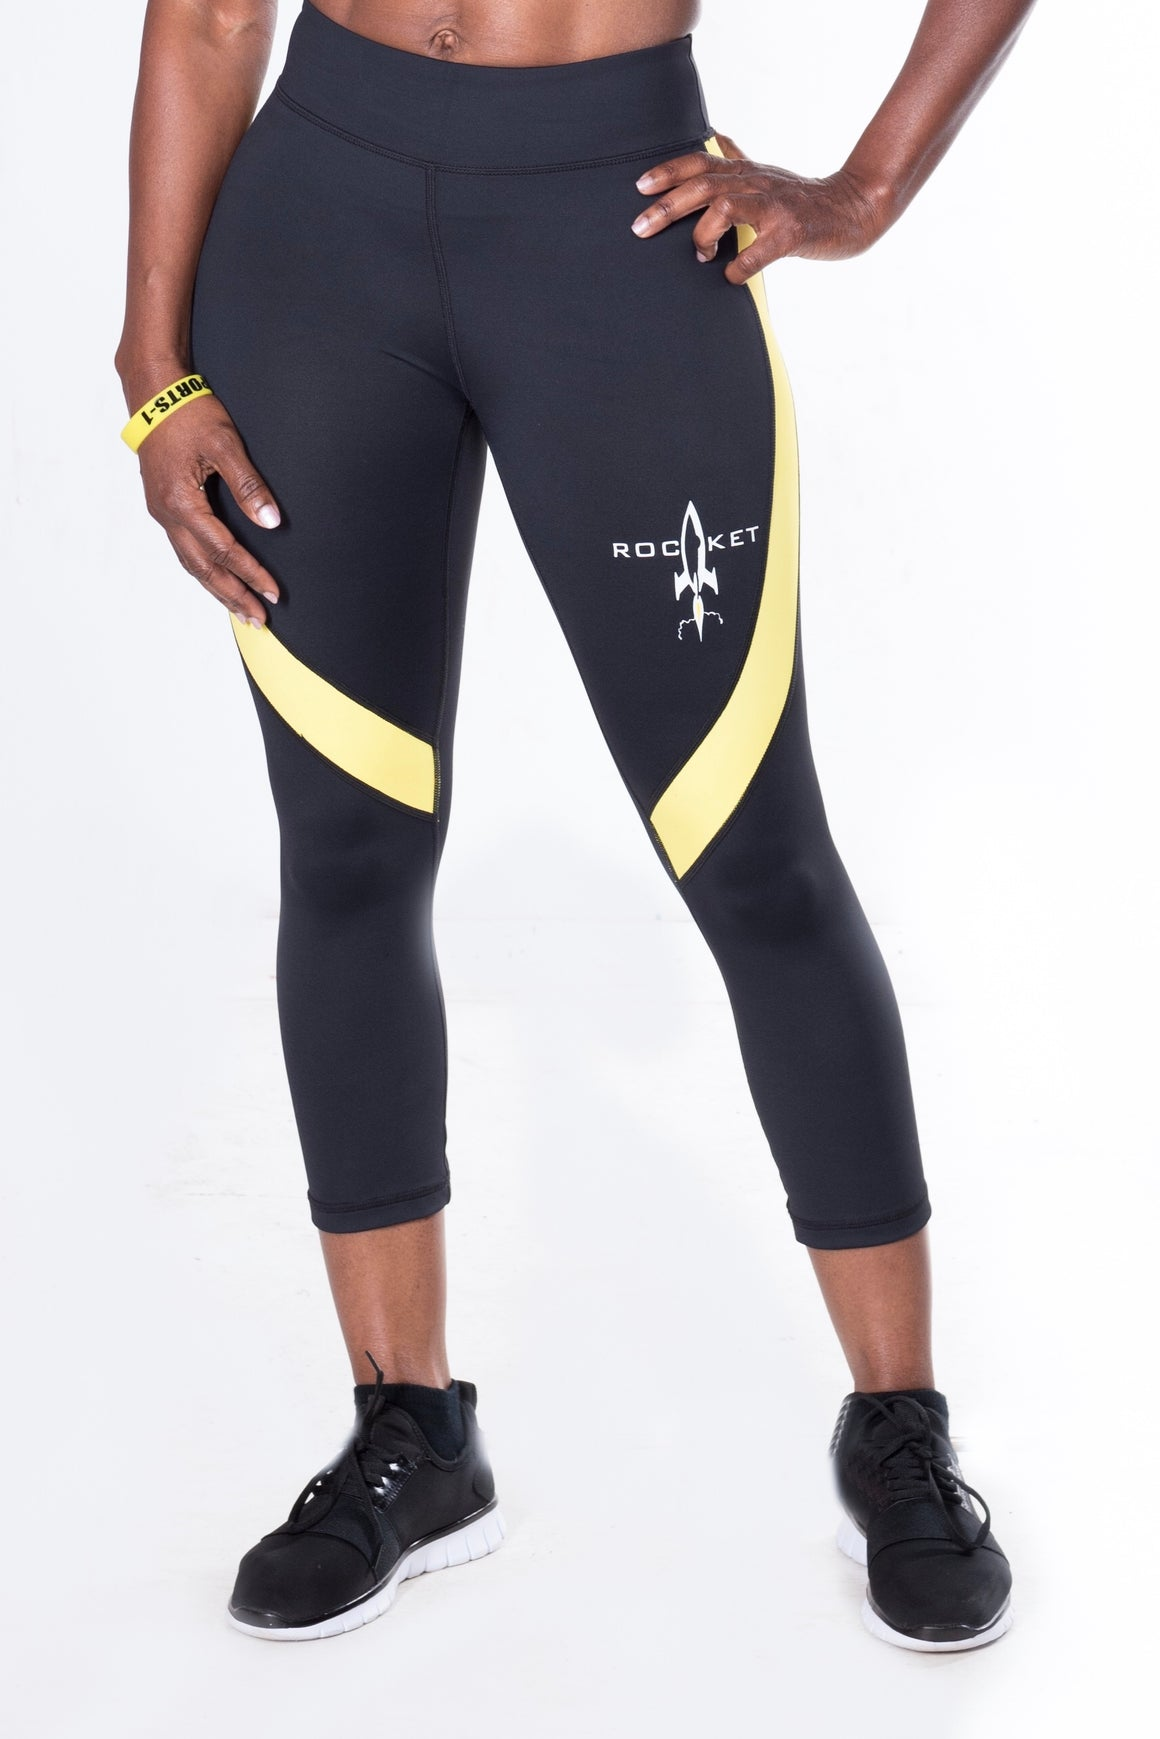 Women's  Action Sport Capri Leggings (White Stripe, Yellow Stripe, and Pink Stripe)